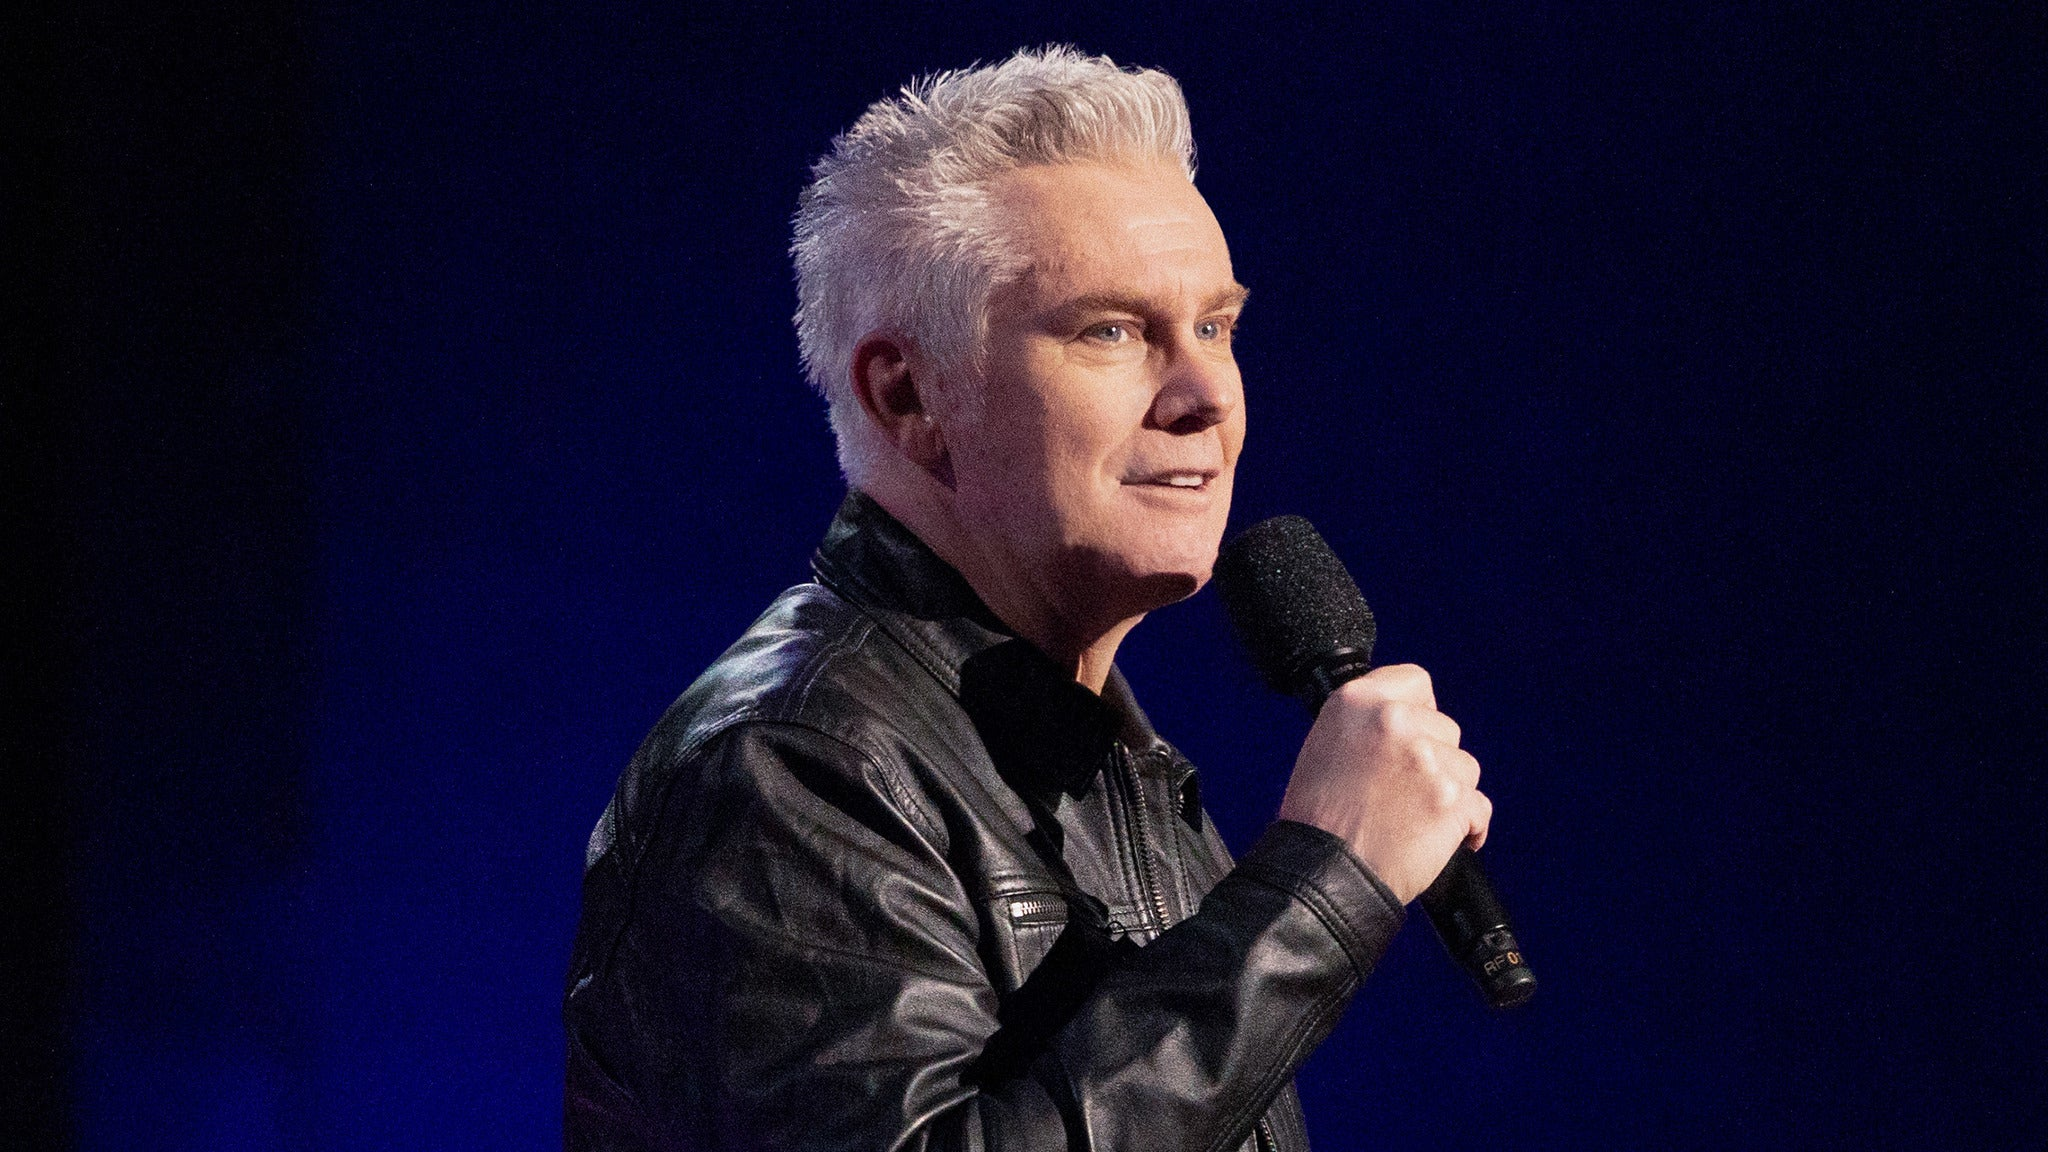 Brian Regan presale passcode for early tickets in Durham